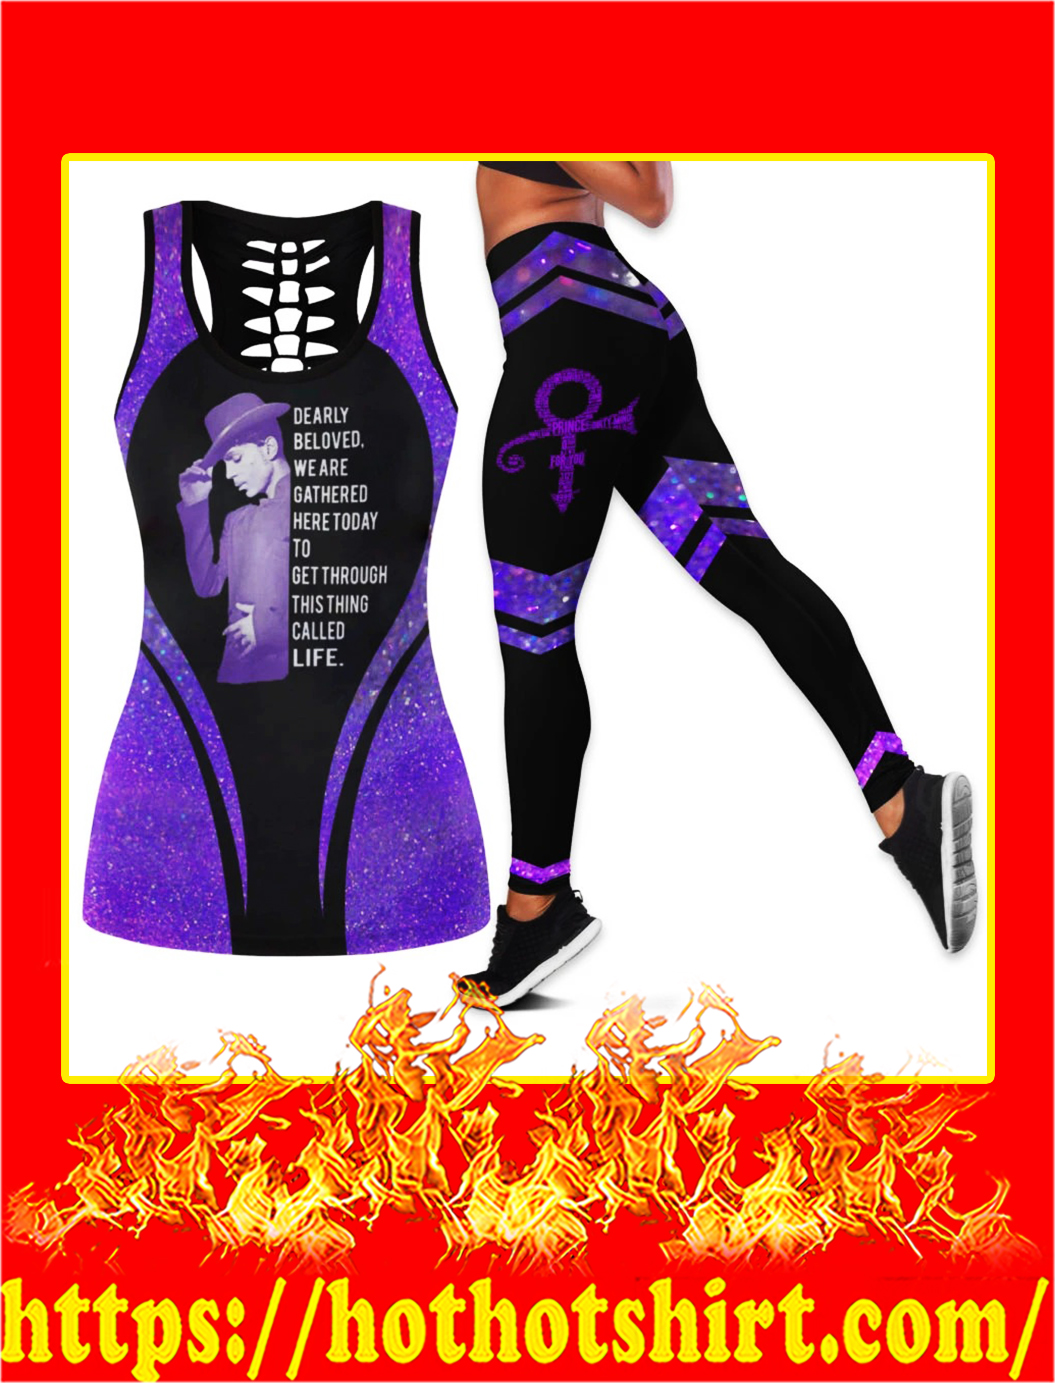 Prince Dearly beloved we are gathered here today legging and hollow tank top - pic 1